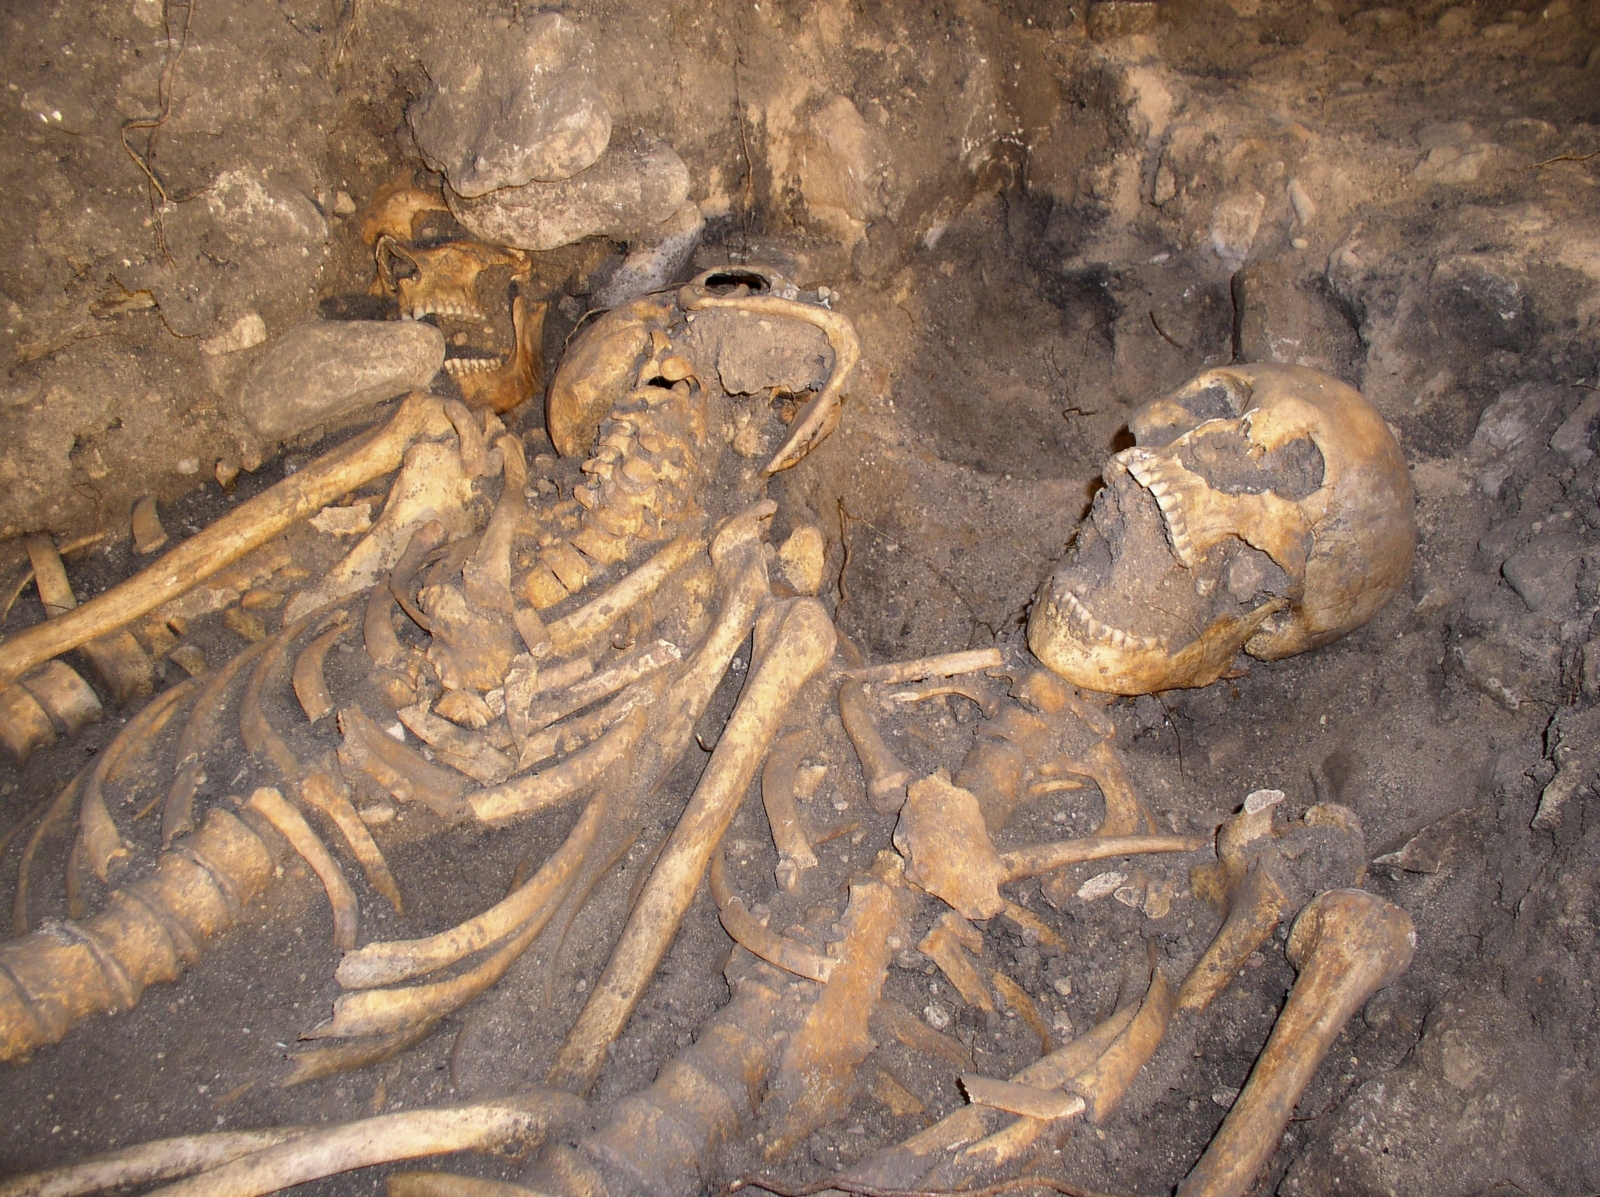 Battle of Towton skeleton